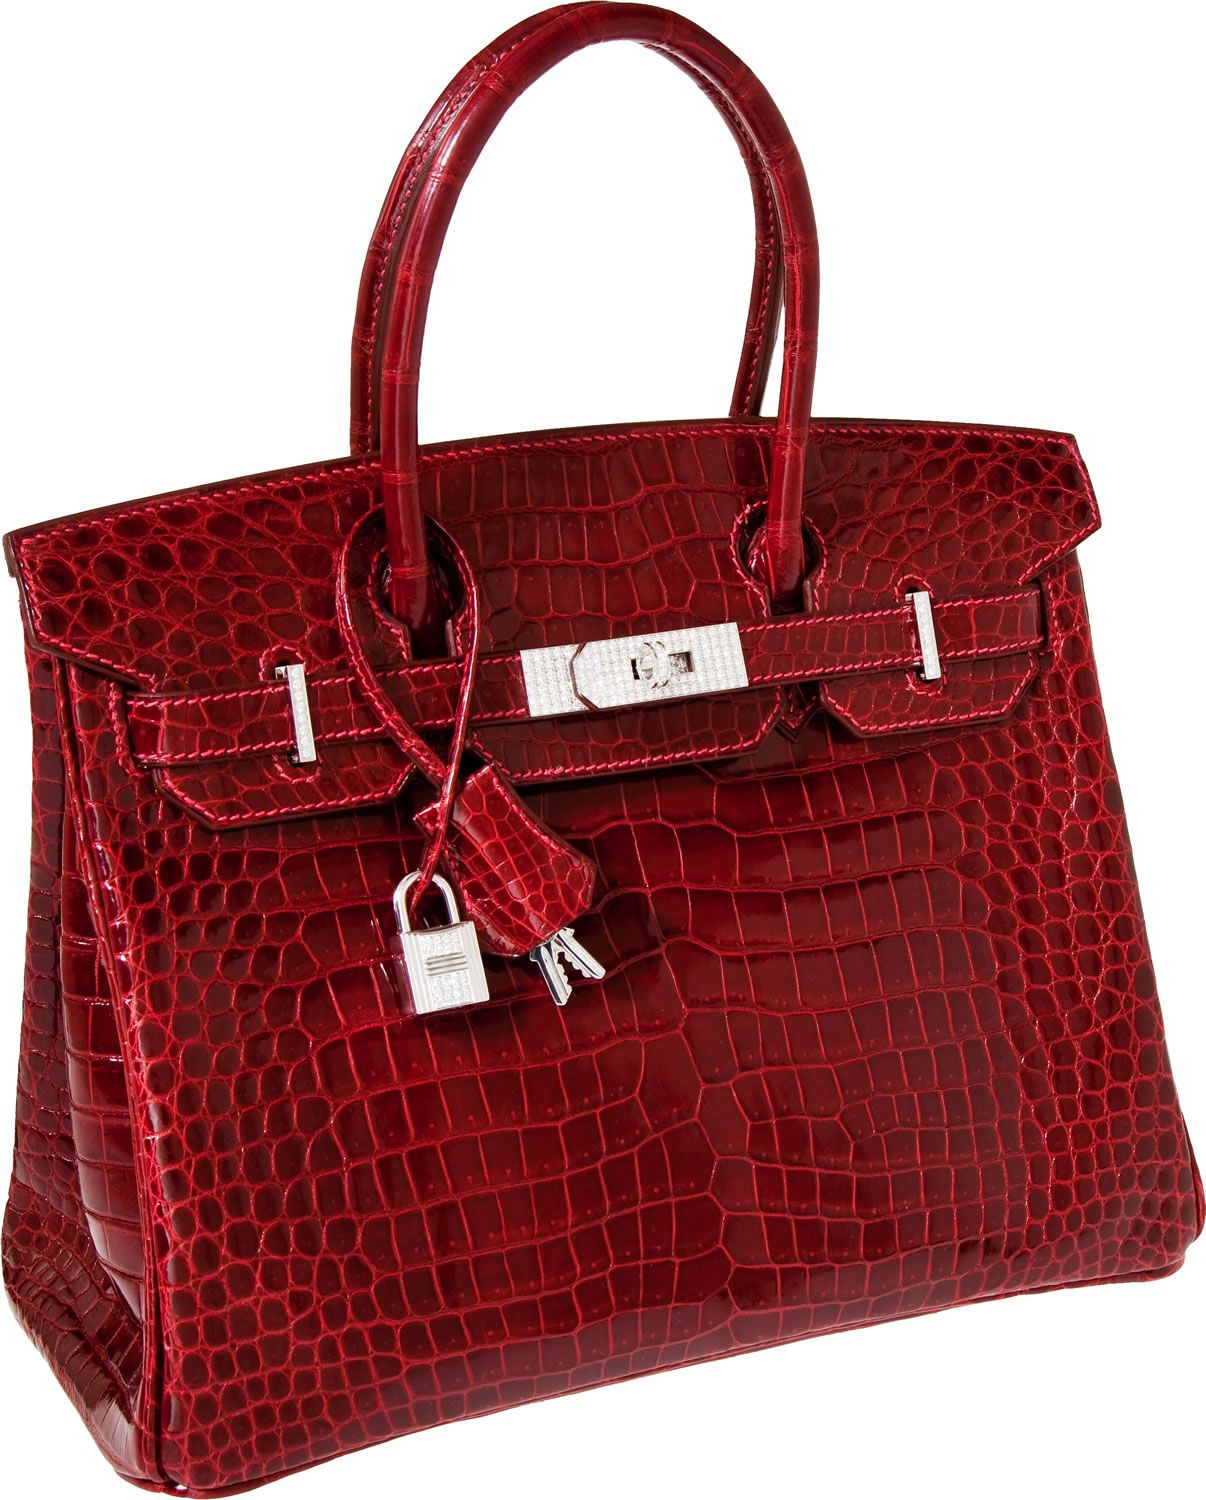 75179eb49c A red crocodile Hermès Birkin handbag (pictured above) has just set the  world record for being the most expensive bag ever to be sold at a public  auction